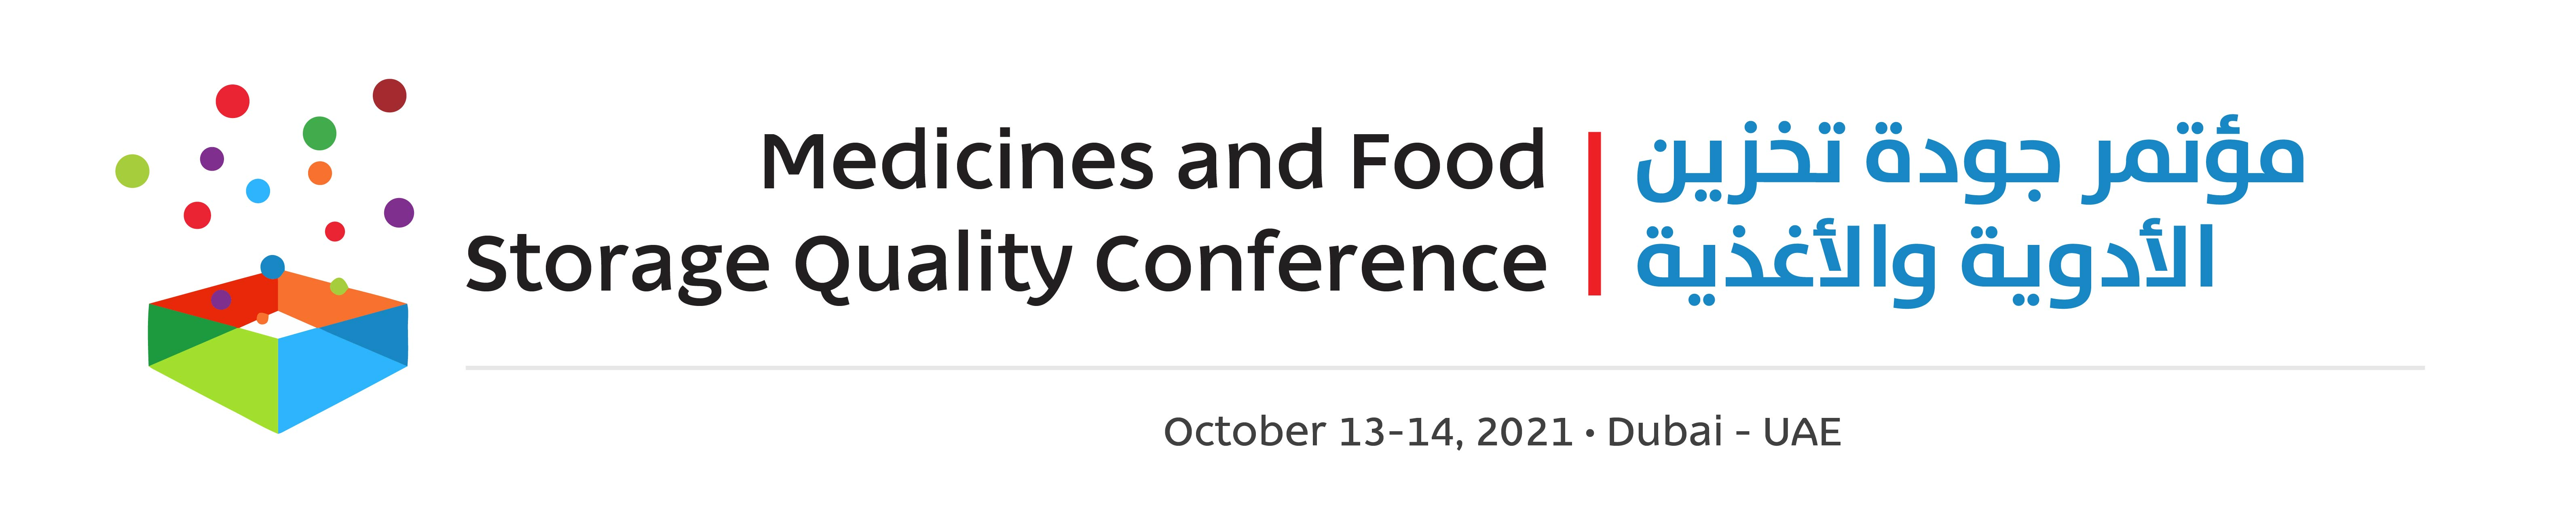 Medicines and Food Storage Quality Conference